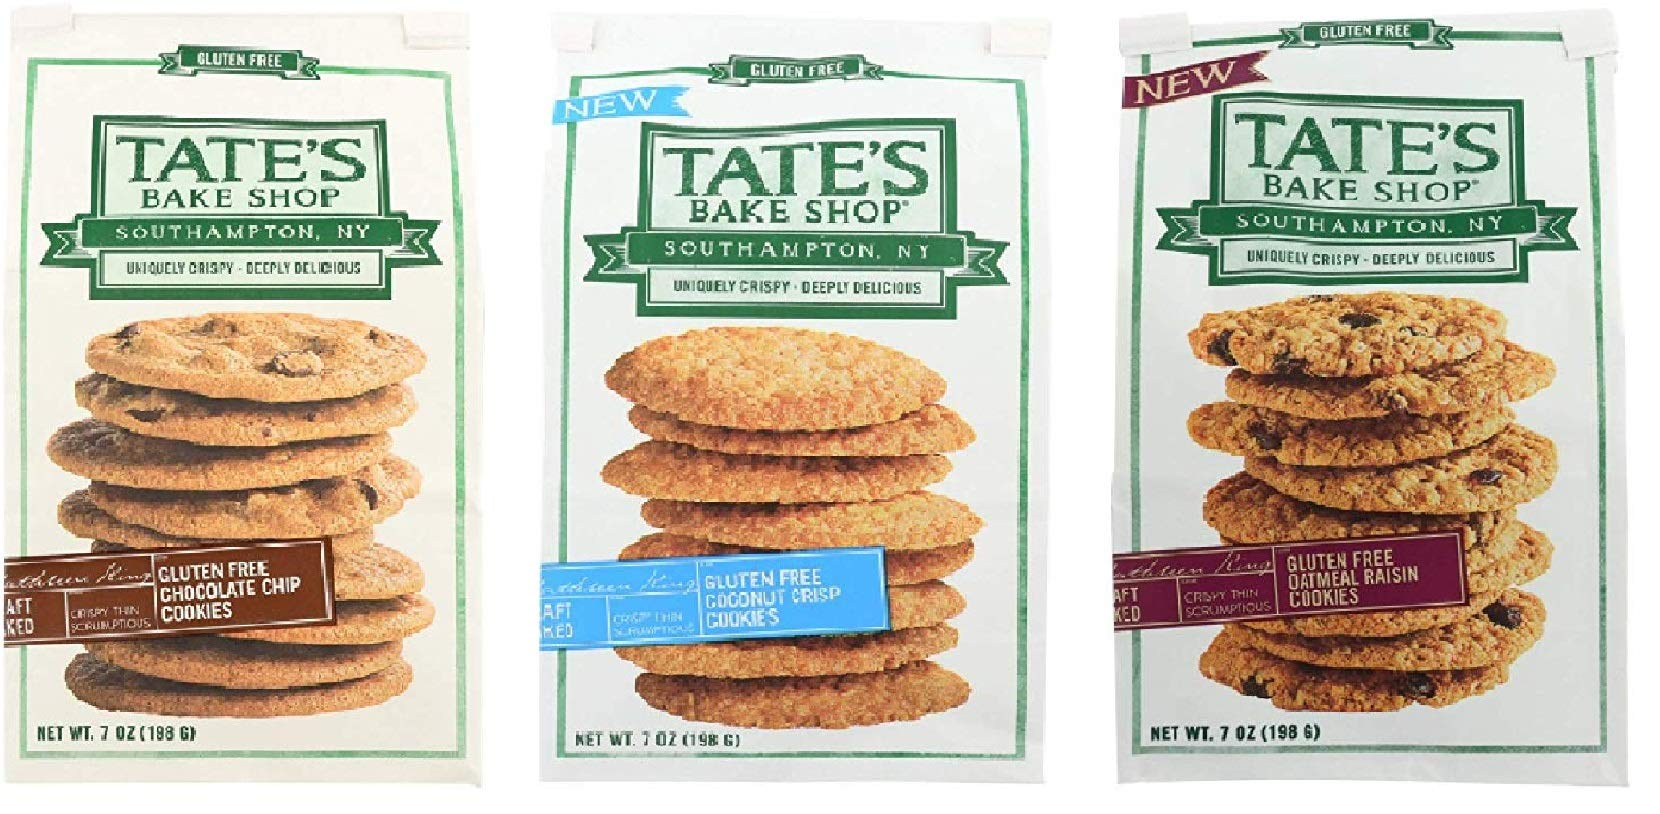 Tate's Gluten Free Cookies 3 Flavor Variety Bundle: (1) Tate's Chocolate Chip Cookies, (1) Tate's Coconut Crisp Cookies, & (1) Tate's Oatmeal Raisin Cookies, 7 oz ea by Tate's Bake Shop